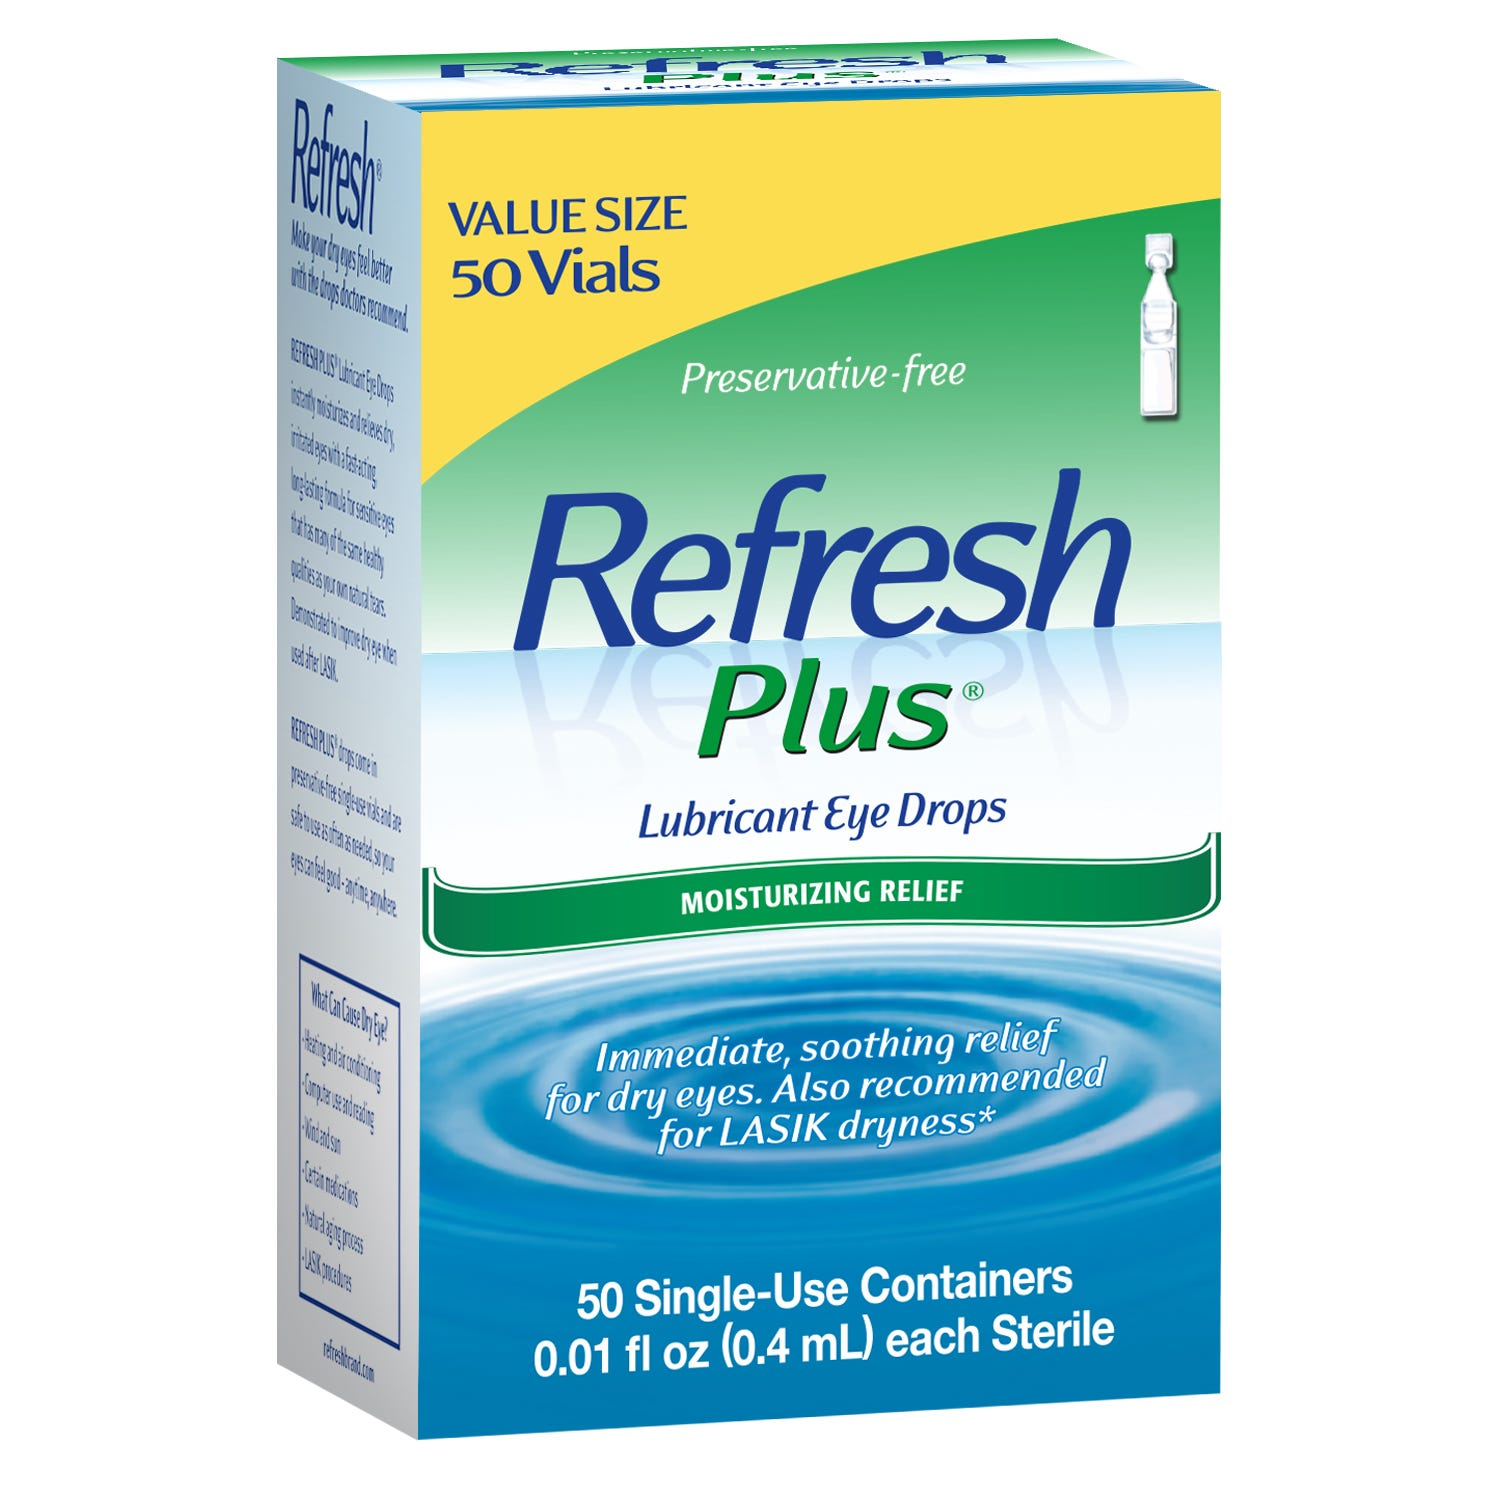 Image of Refresh Plus Lubricant Eye Drops, Sensitive, Single-Use Containers, 50 - 0.01 fl oz (0.4 ml) containers